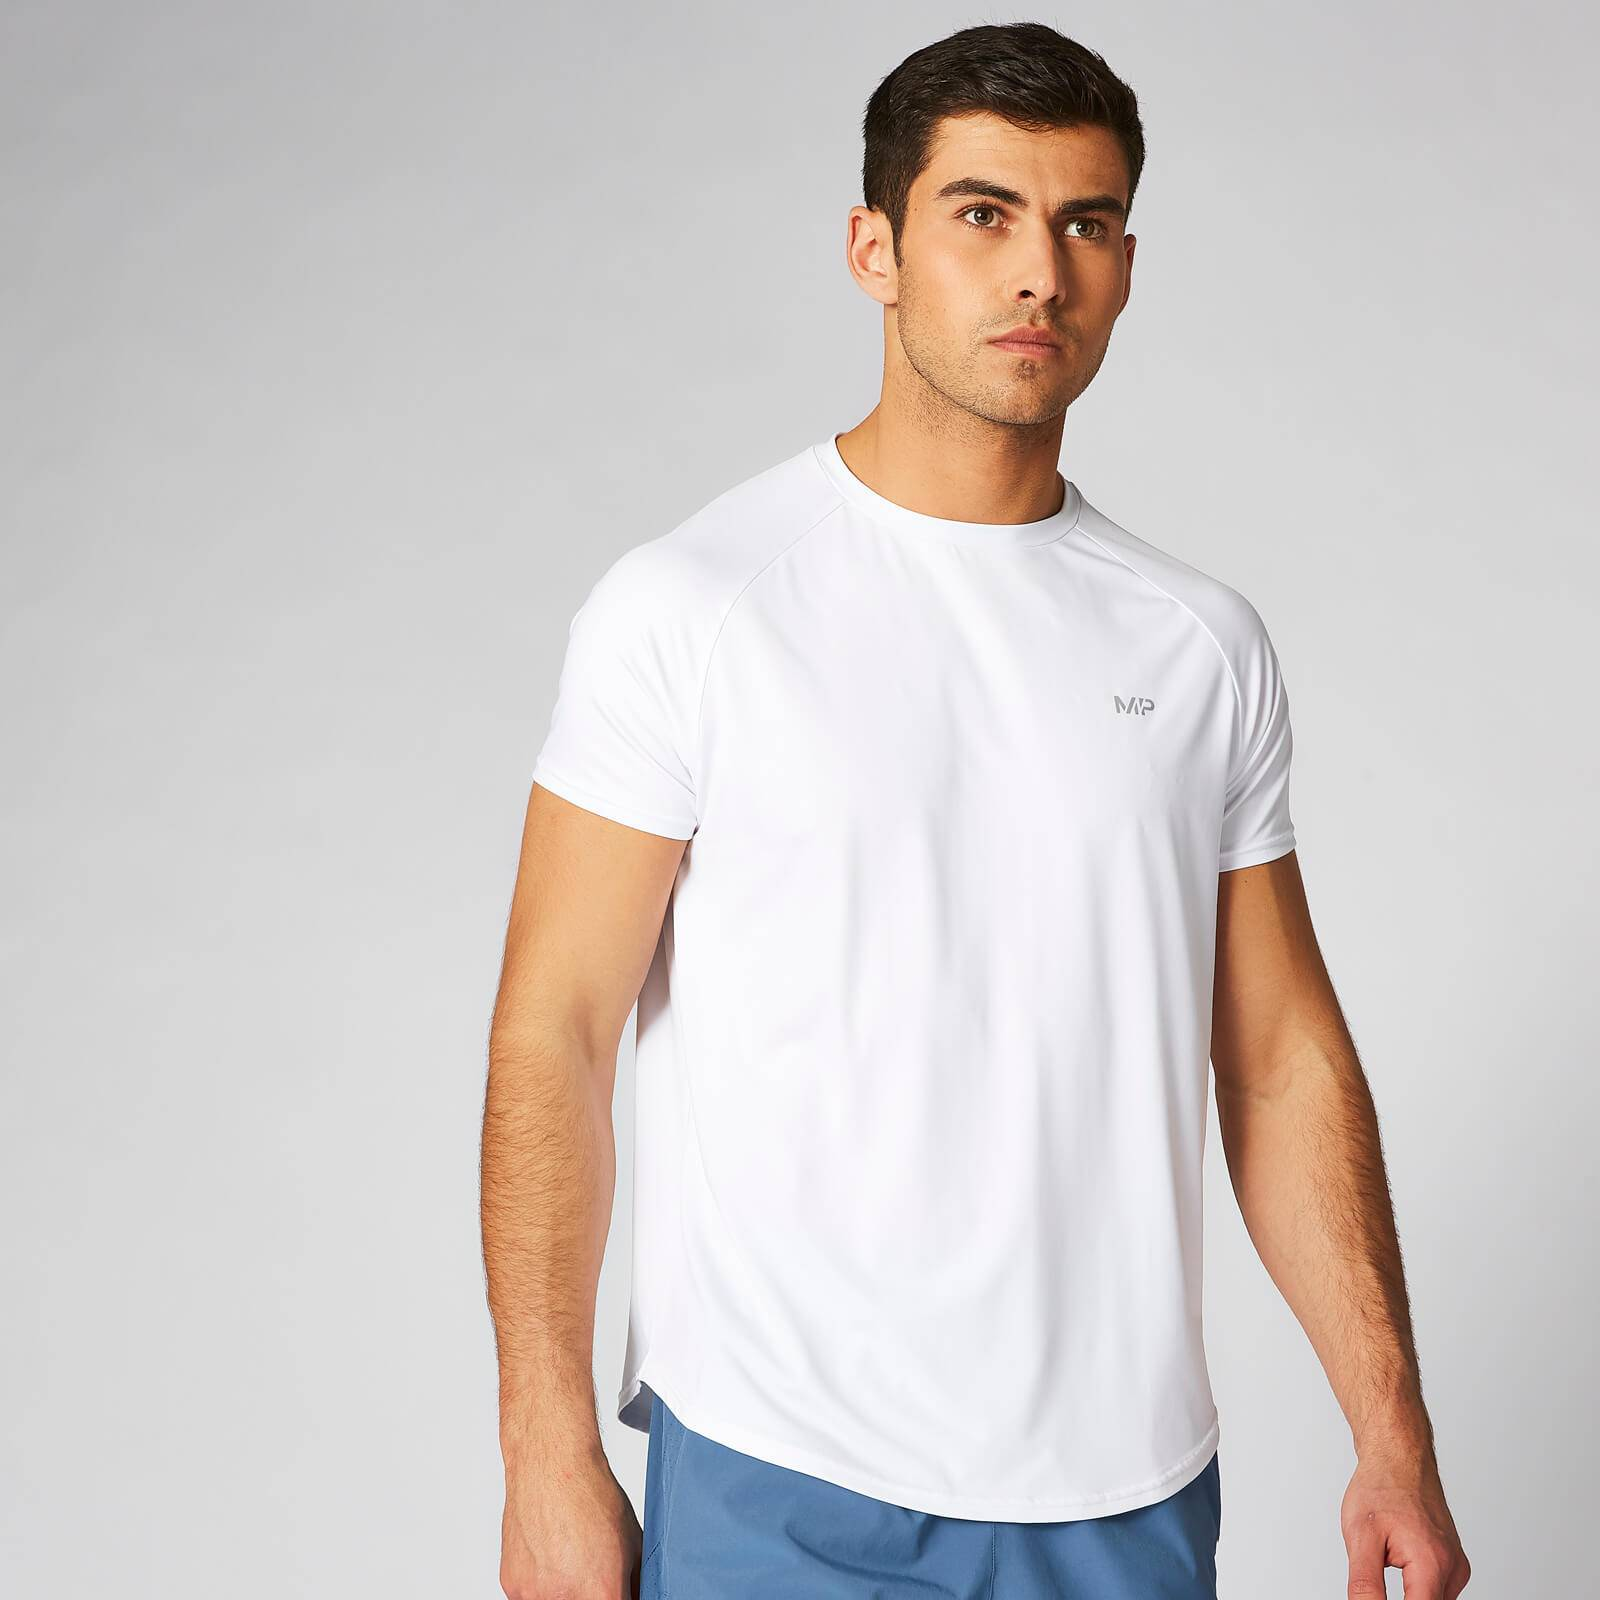 Myprotein Dry-Tech Infinity T-Shirt - White - S